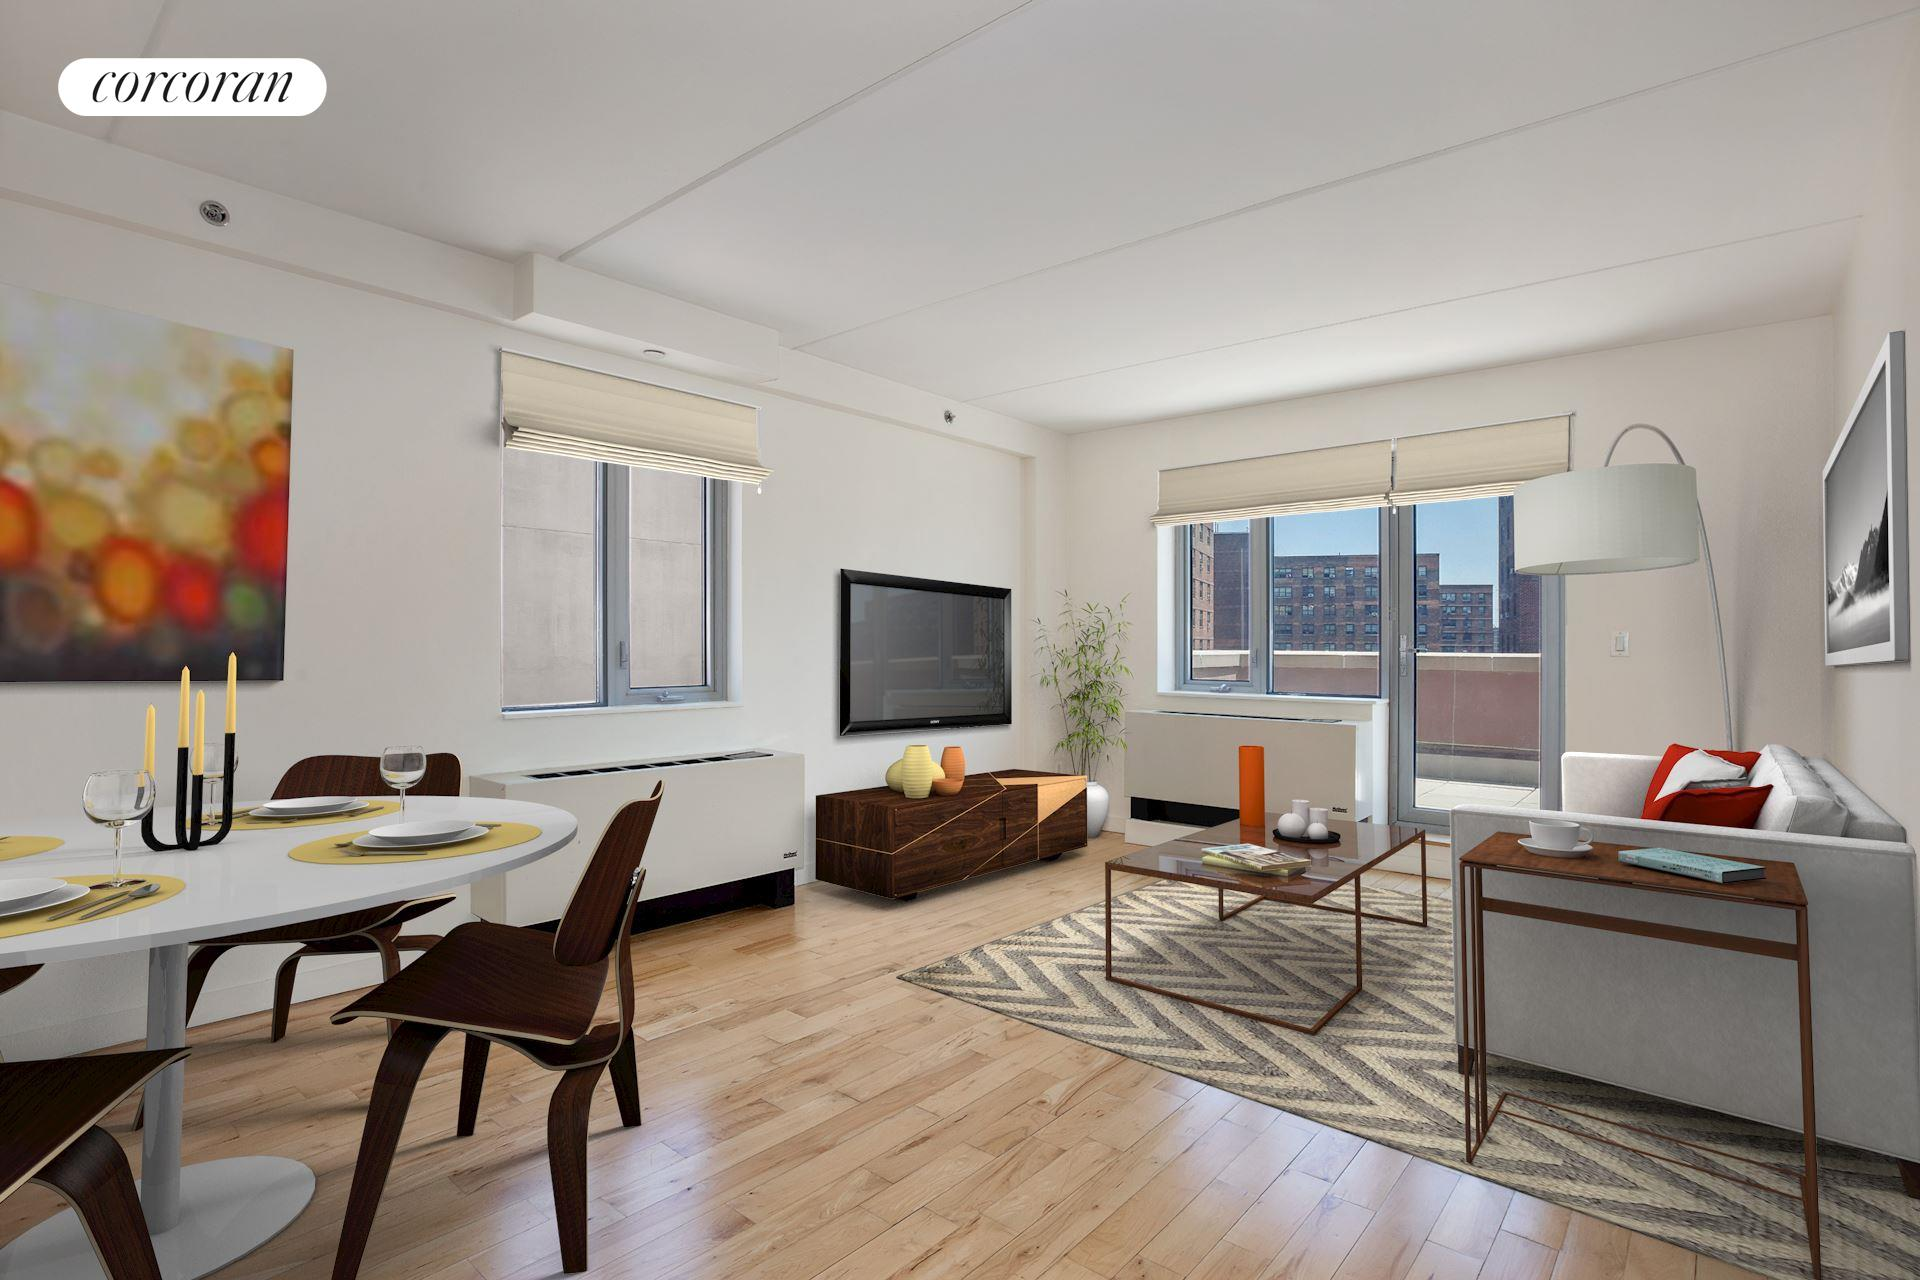 1810 Third Avenue, B3B, Select a Category